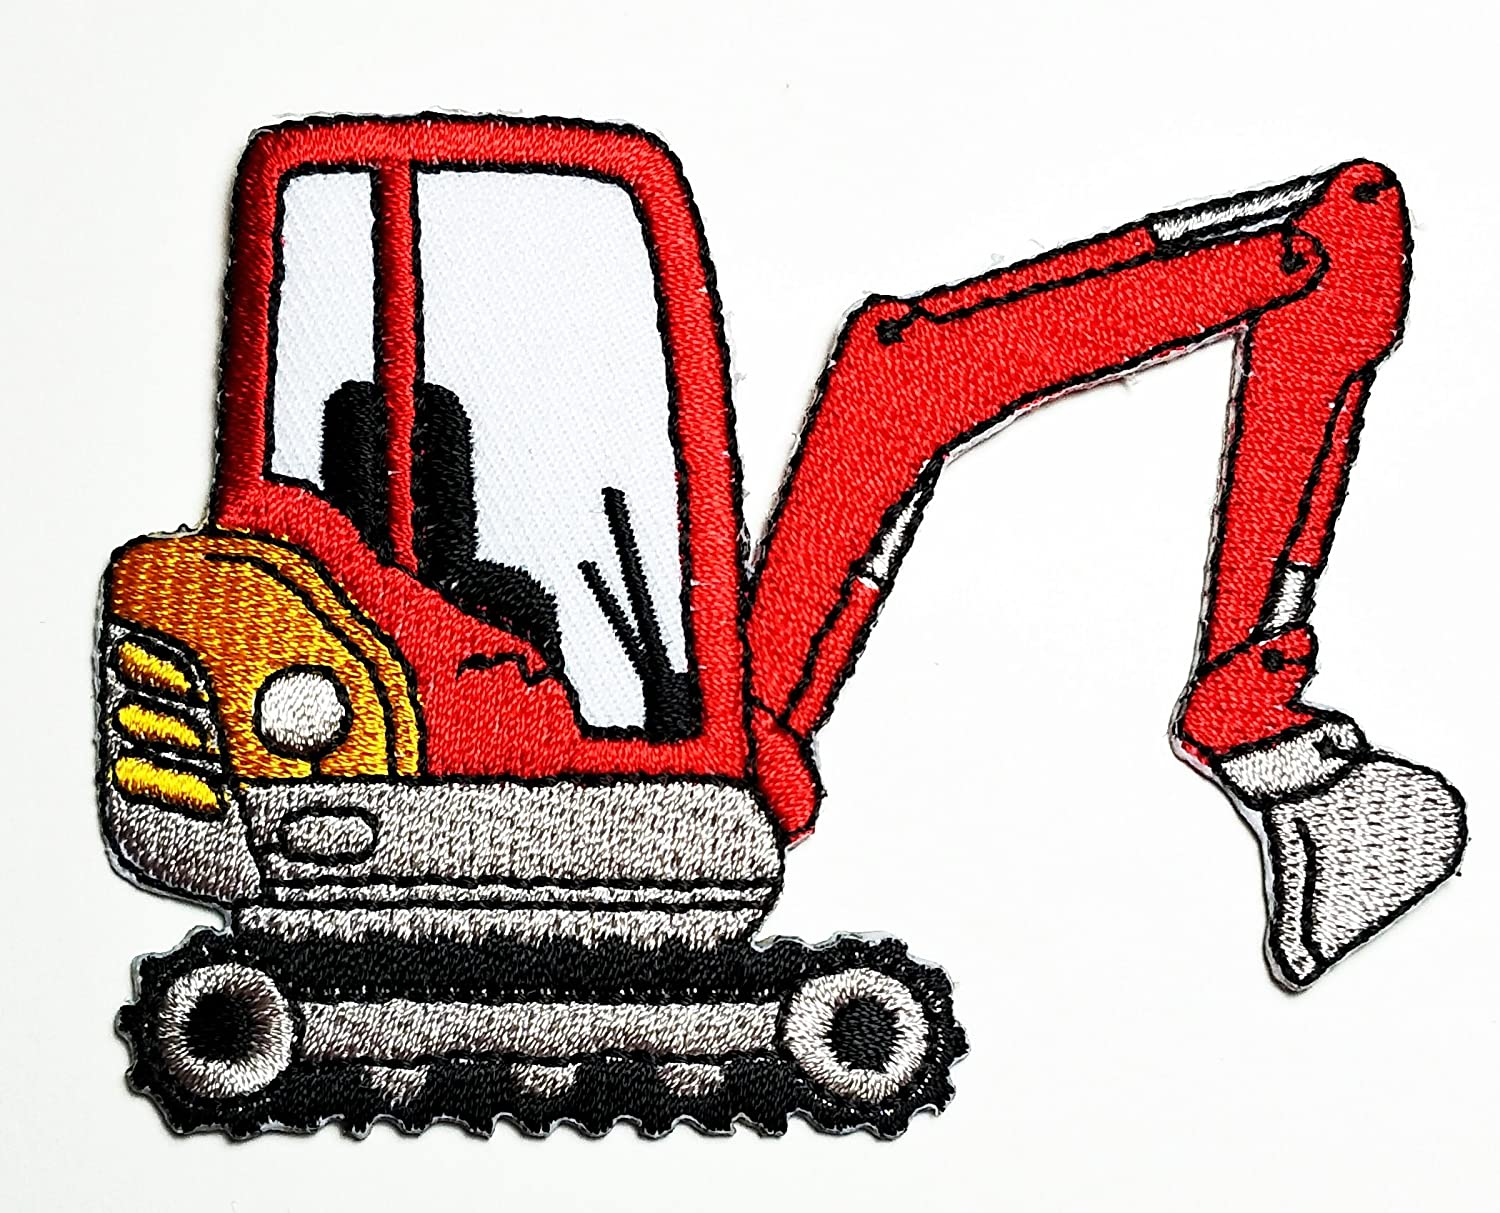 HHO Backhoe Digger Tractor Loader trackhoe Bulldozer Embroidered Patch Embroidered DIY Patches, Cute Applique Sew Iron on Kids Craft Patch for Bags Jackets Jeans Clothes